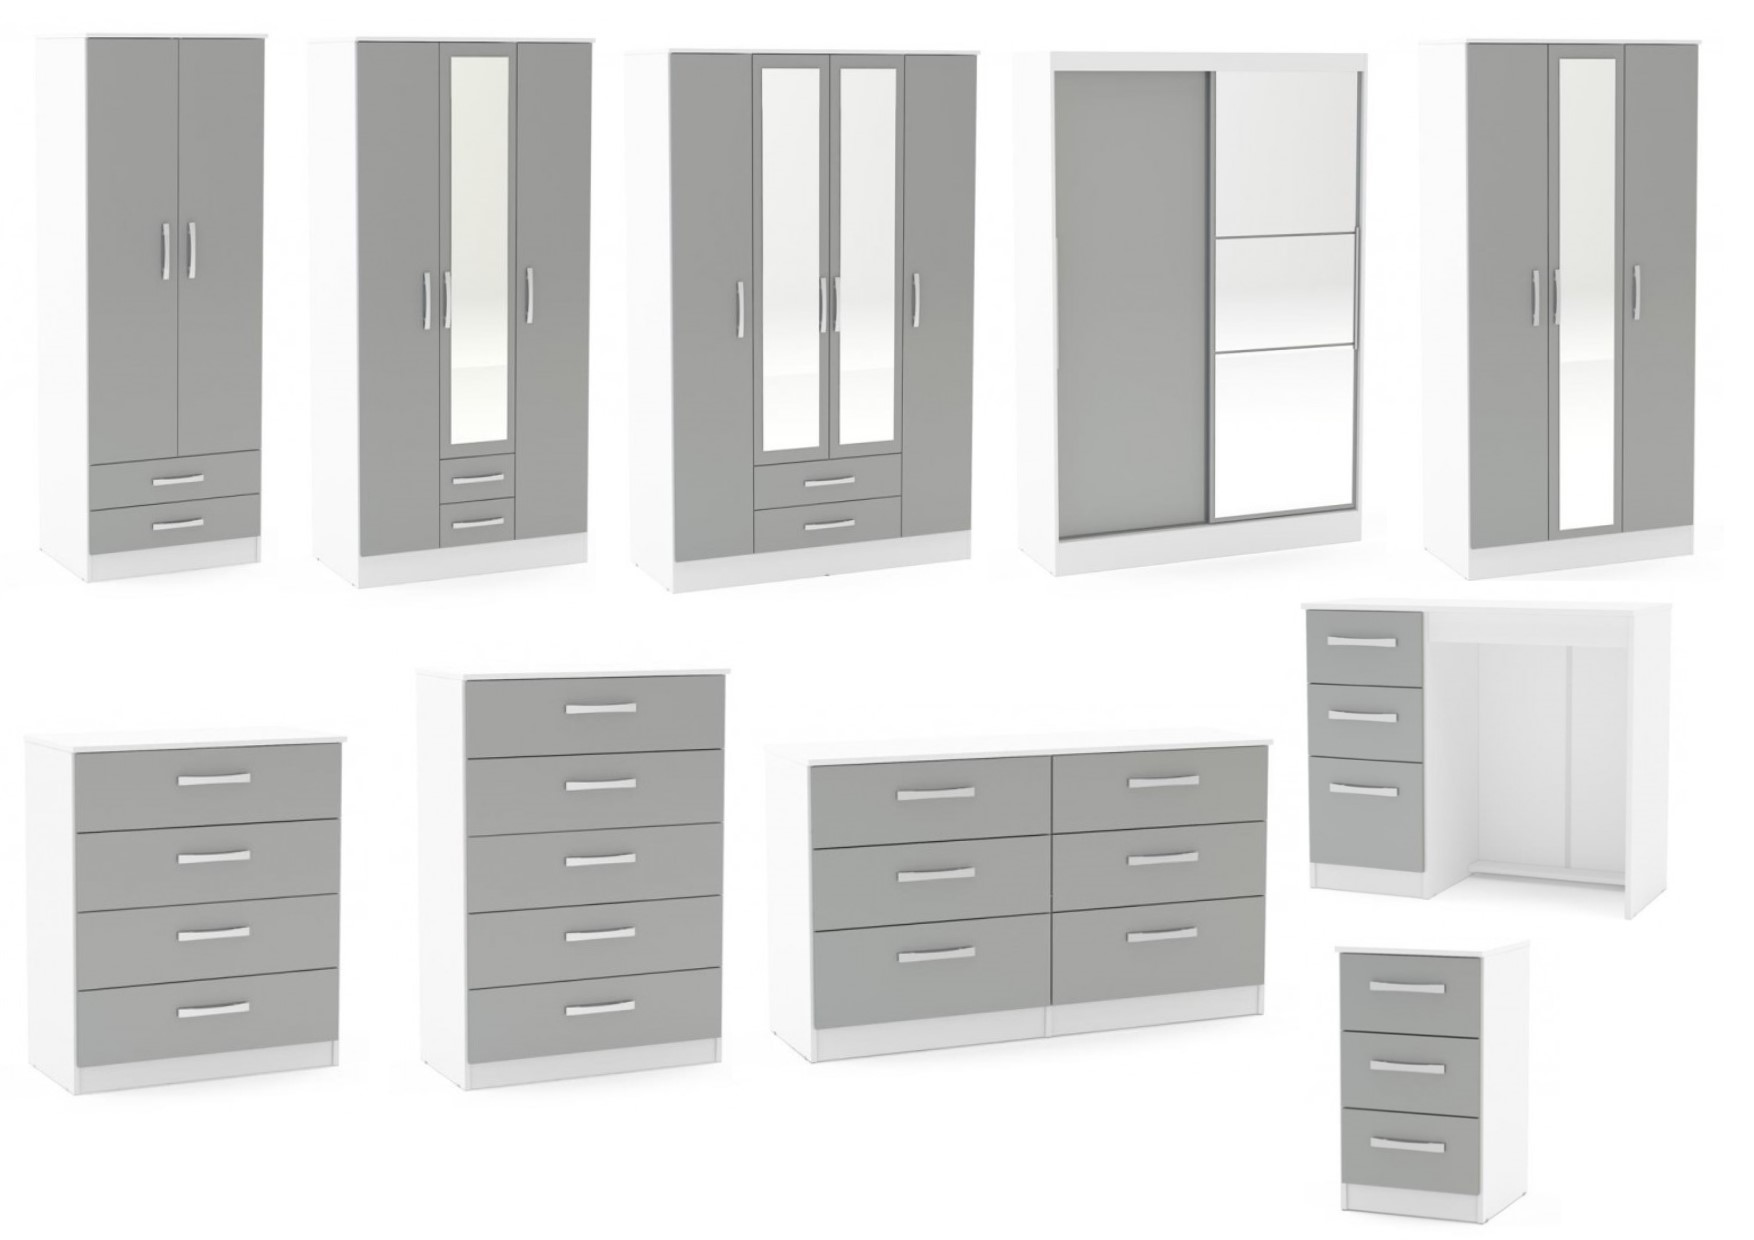 Lynx White Grey Gloss Bedroom Furniture Wardrobe Chest Bedside By